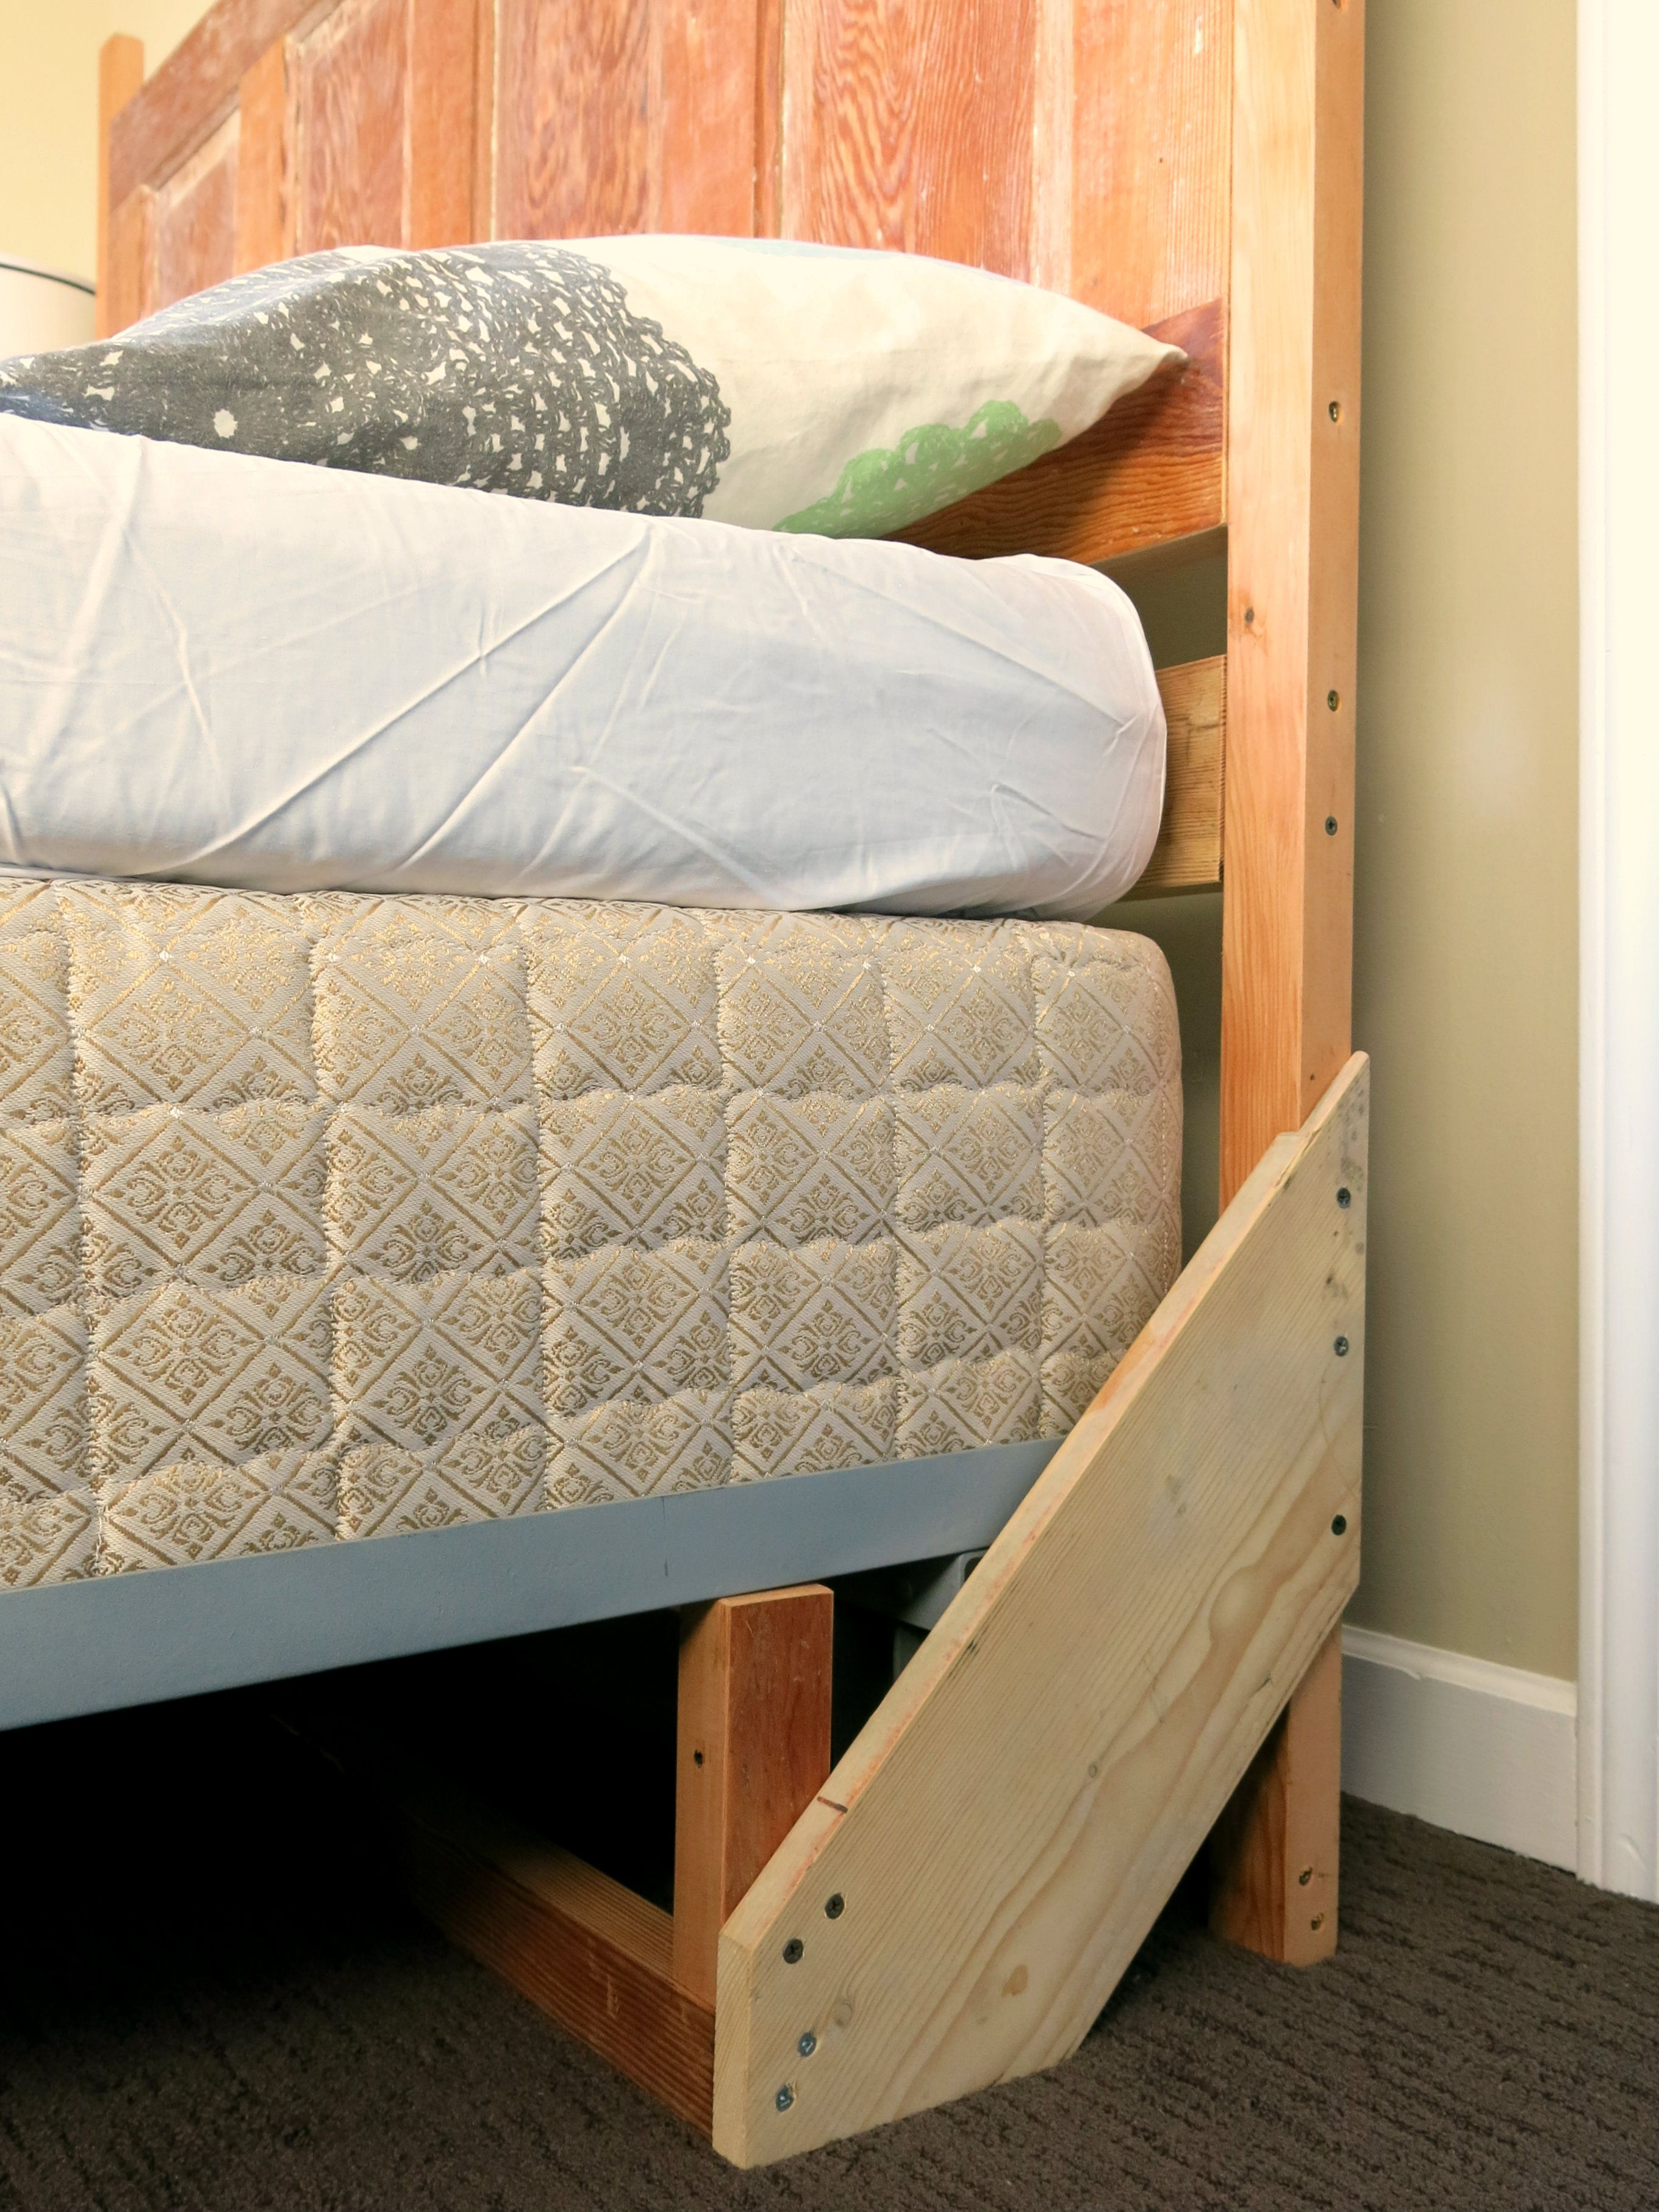 How To Build A Sturdy Freestanding Bed Frame Headboard Solves Problem Of An Upright Wooden